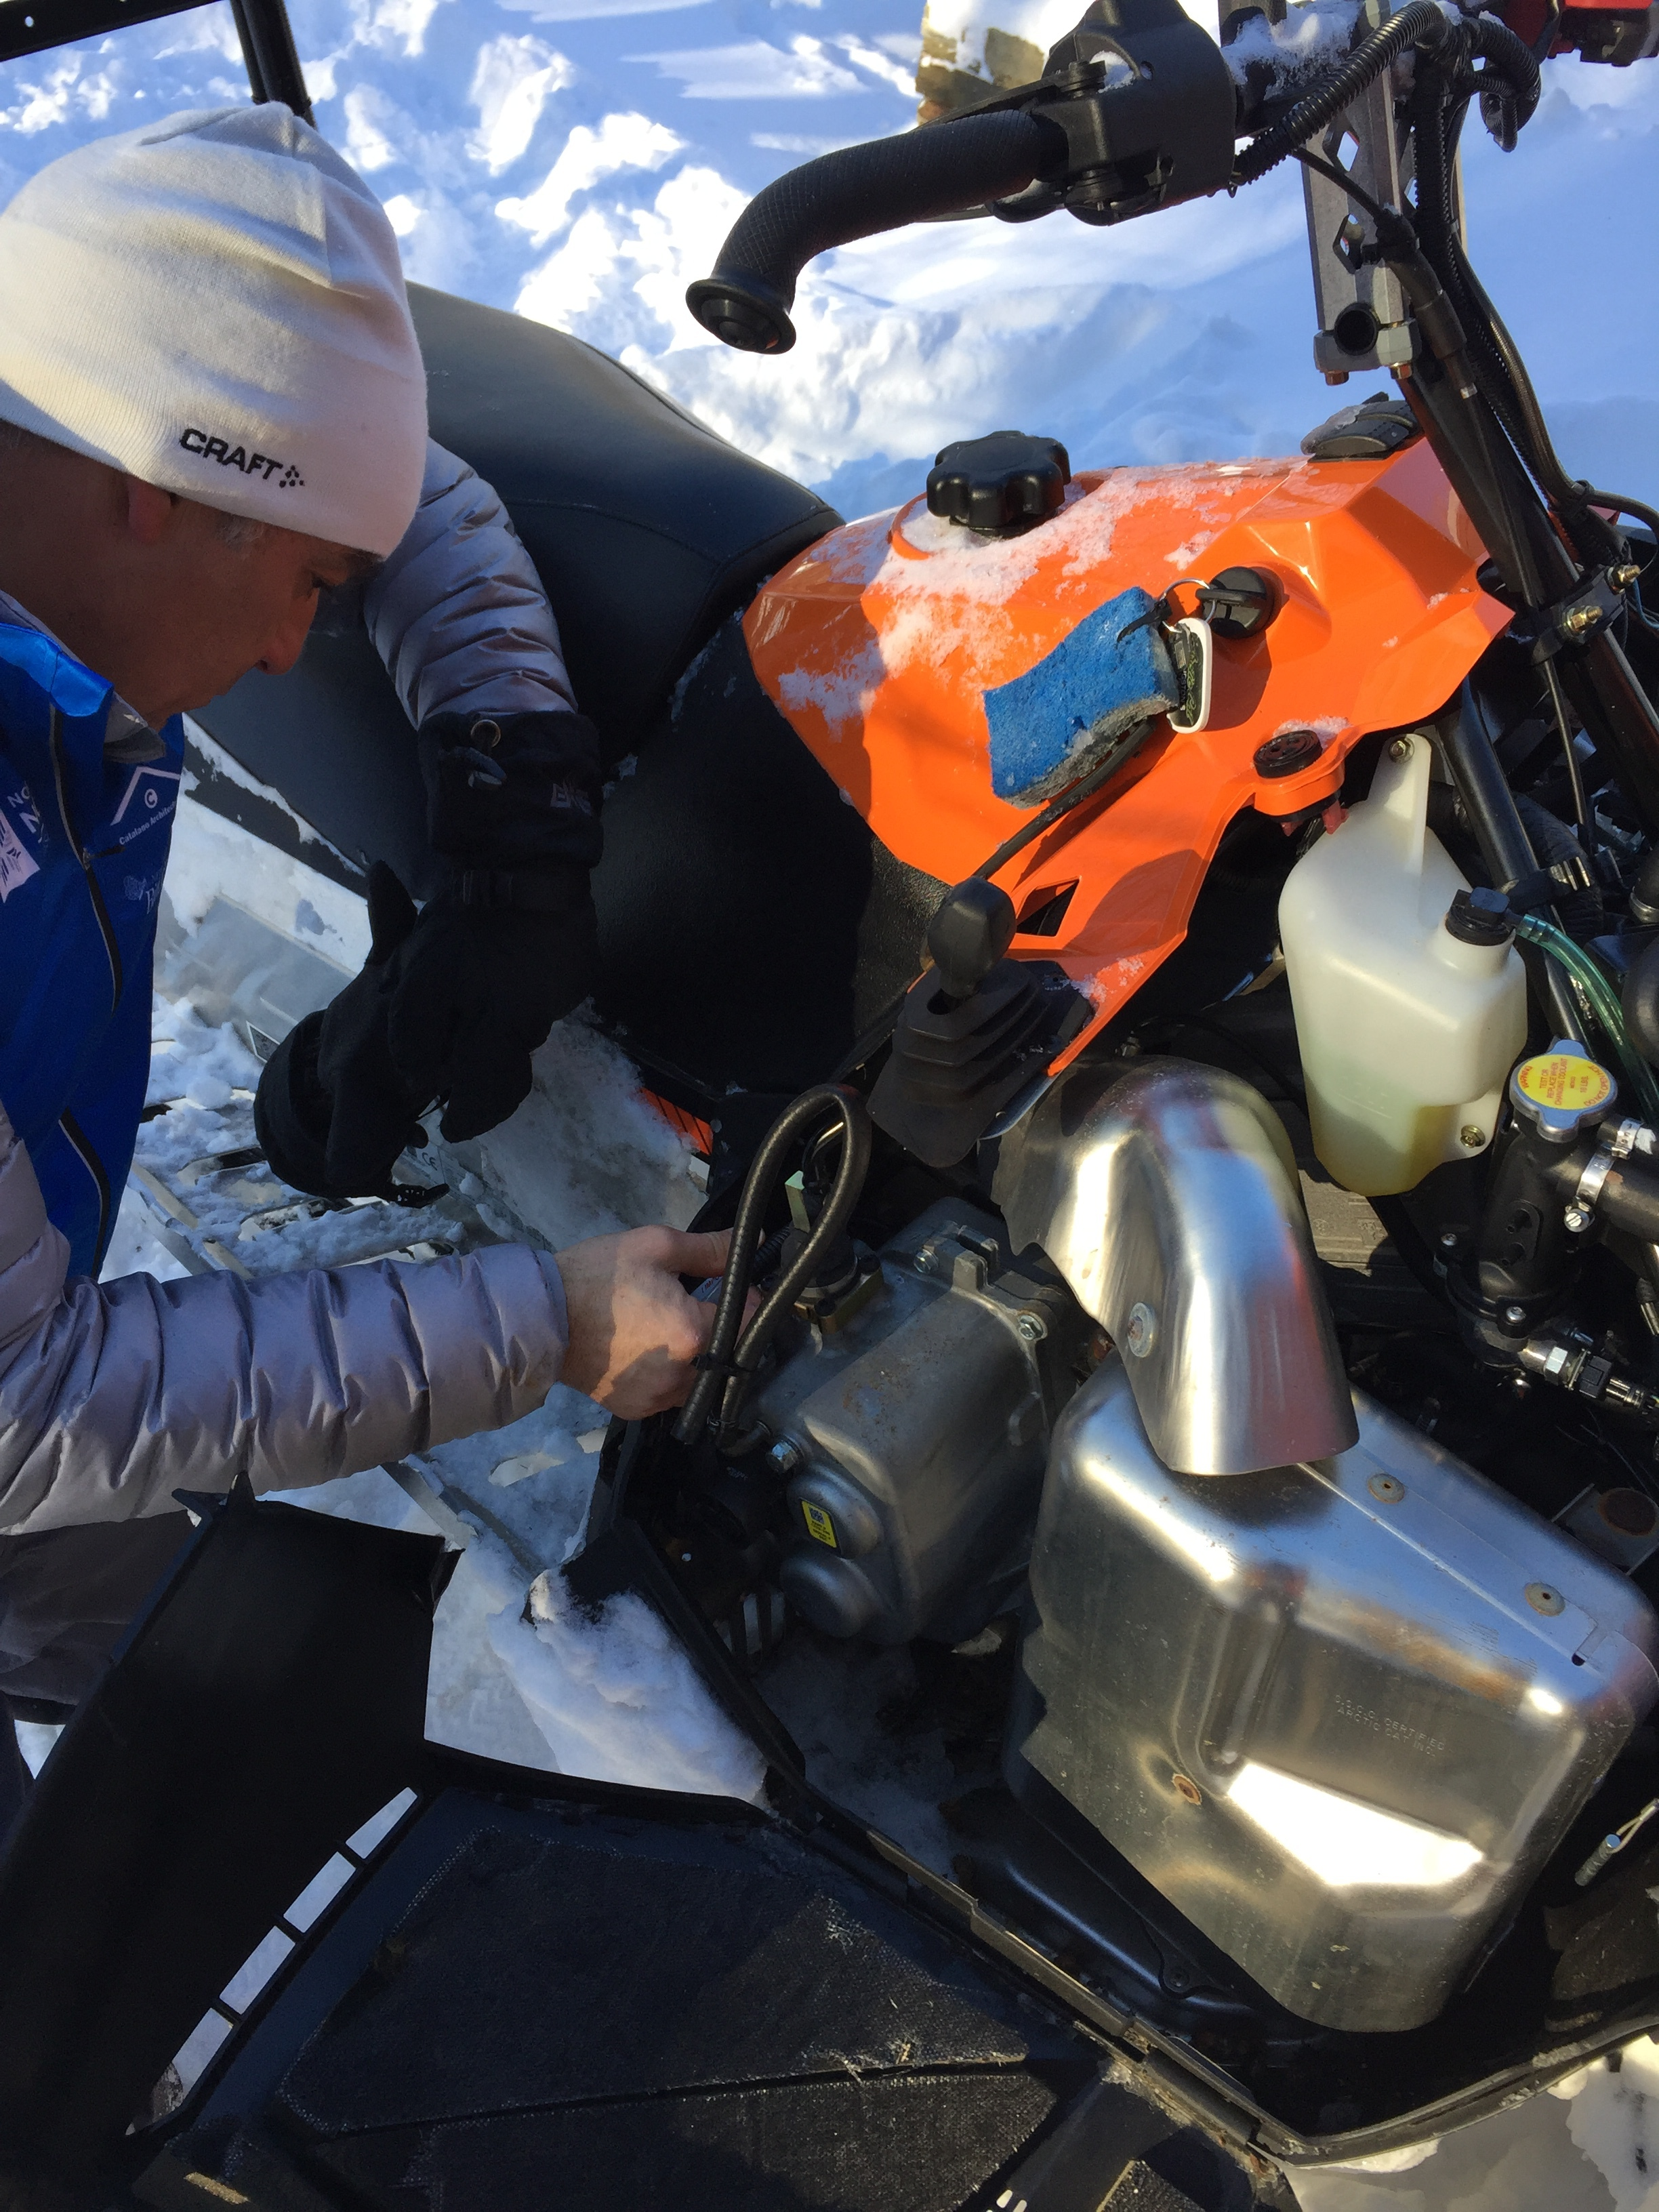 The inglorious side of grooming: Delving into the mysteries of sled transmission sensor wire troubleshooting.